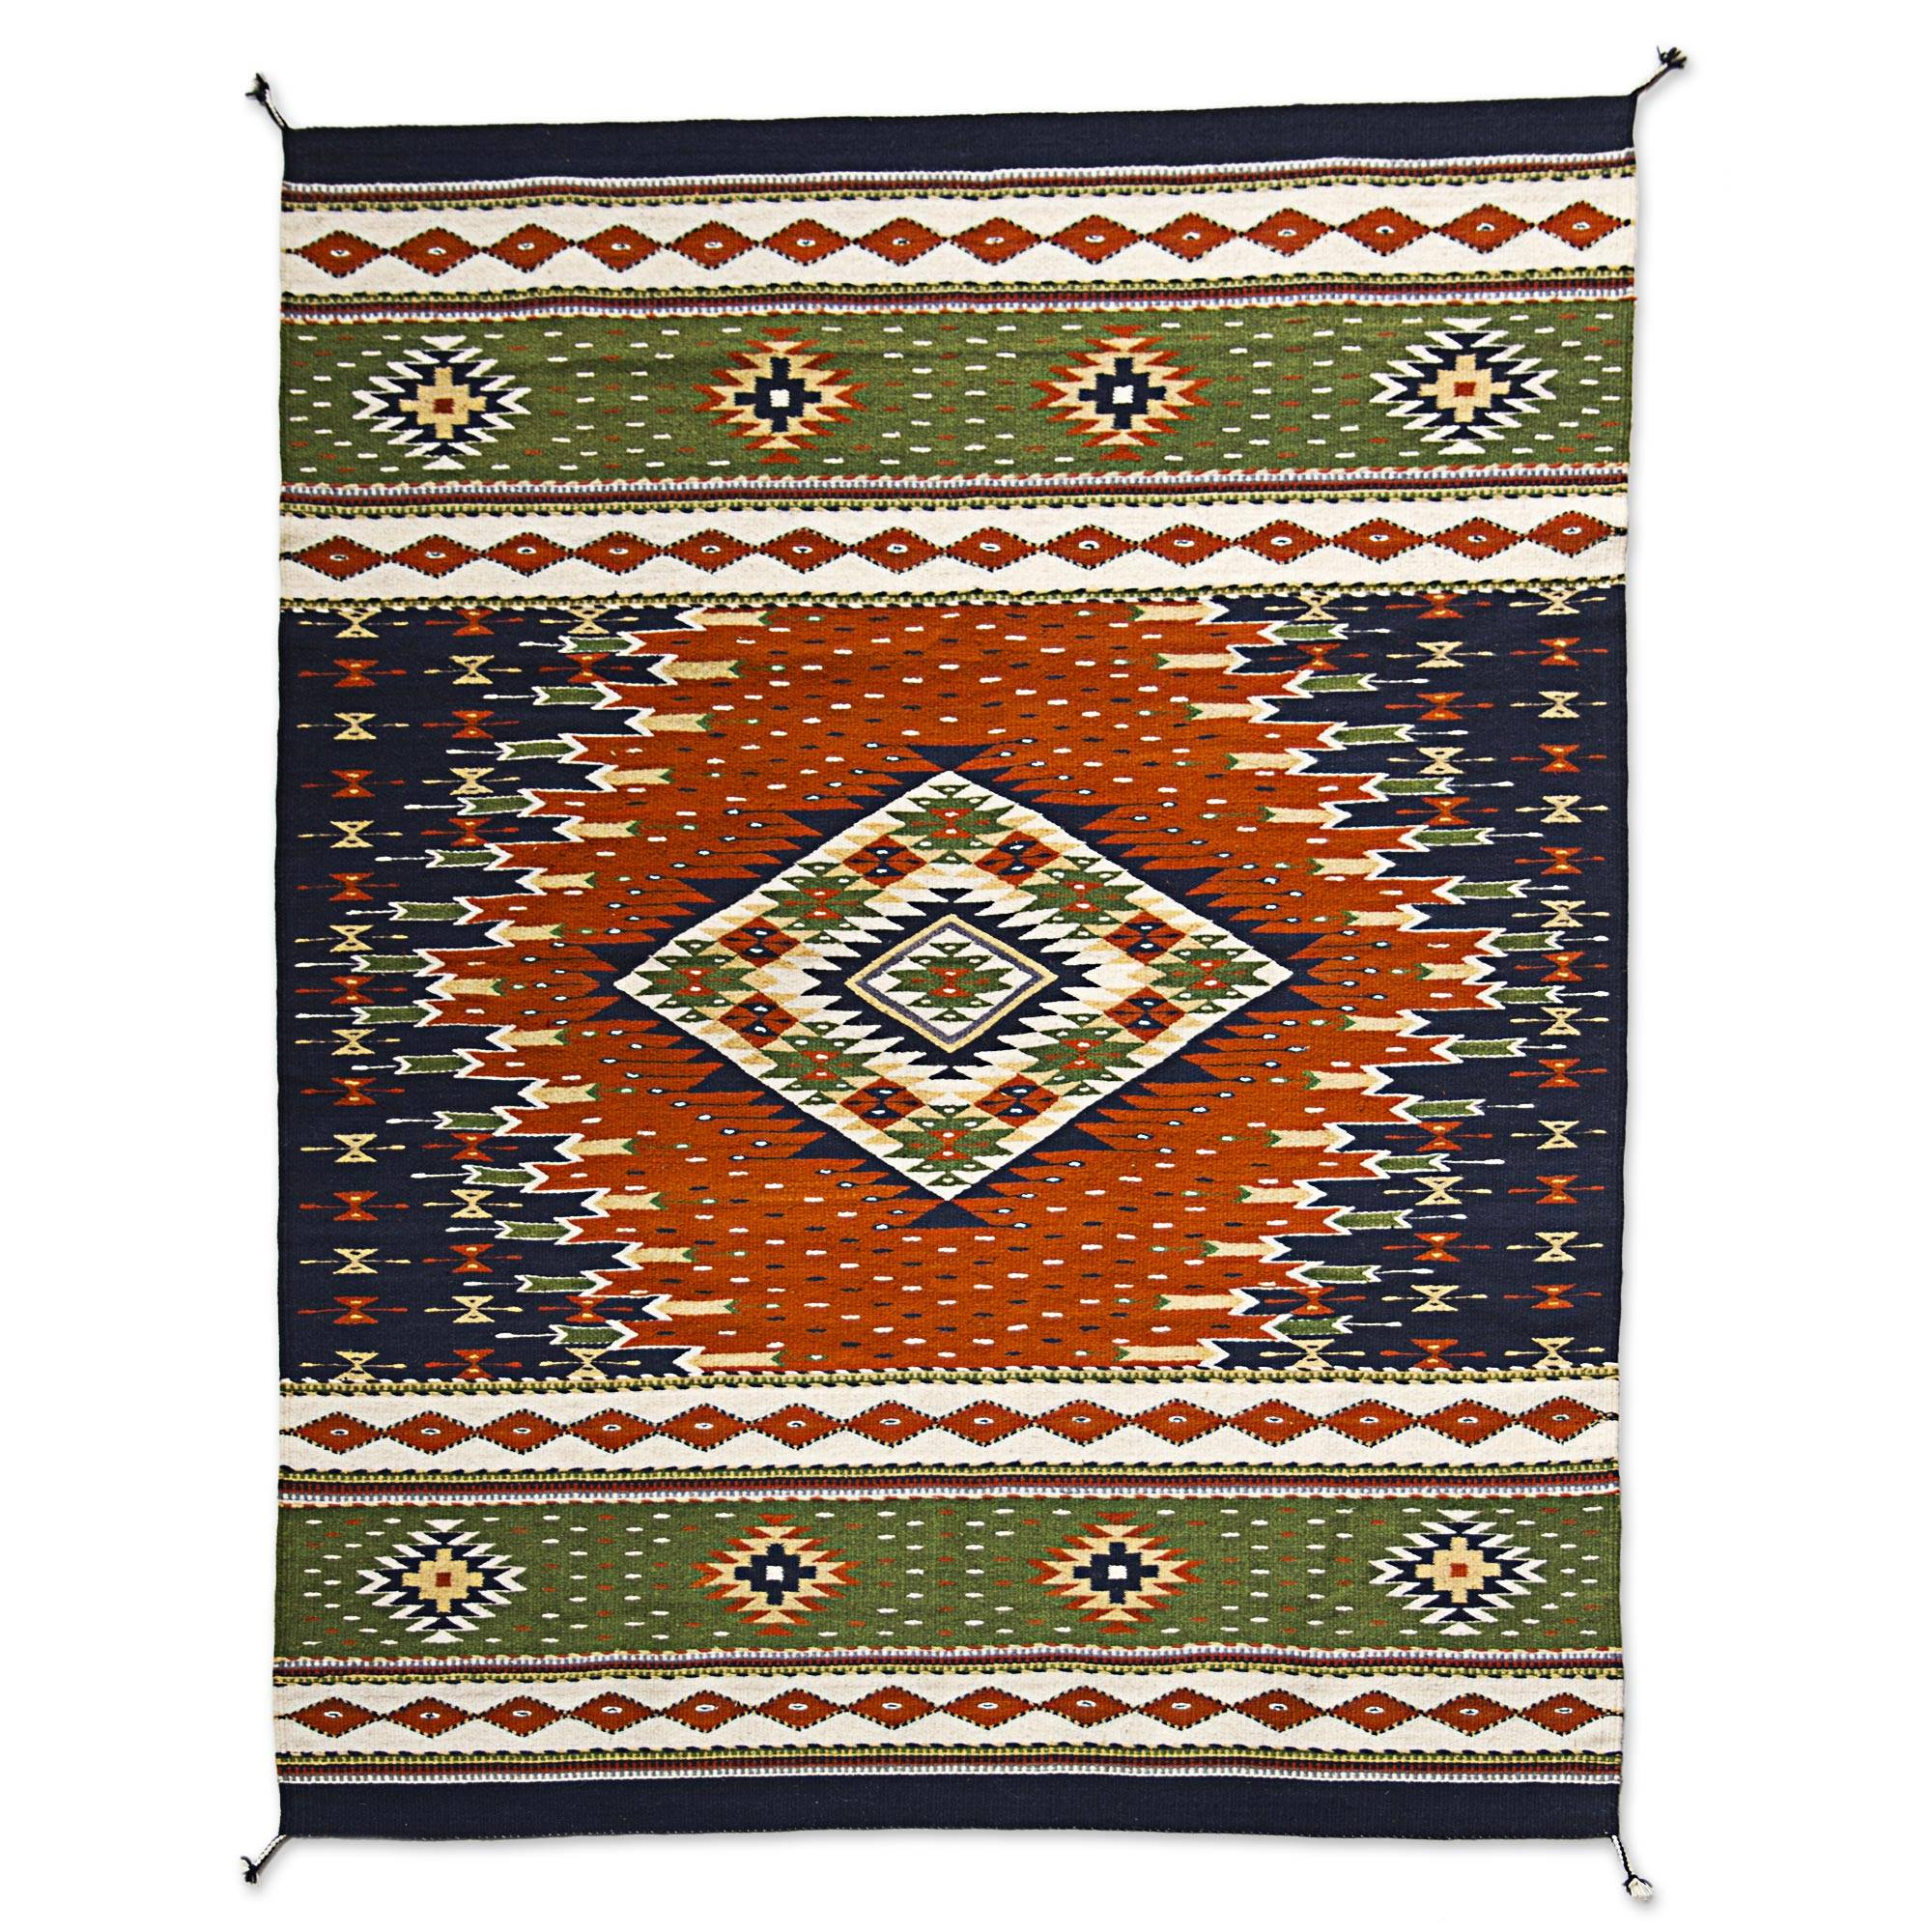 Forest Theme Zapotec Wool Area Rug In Earth Tones 4x6 Forest Nights